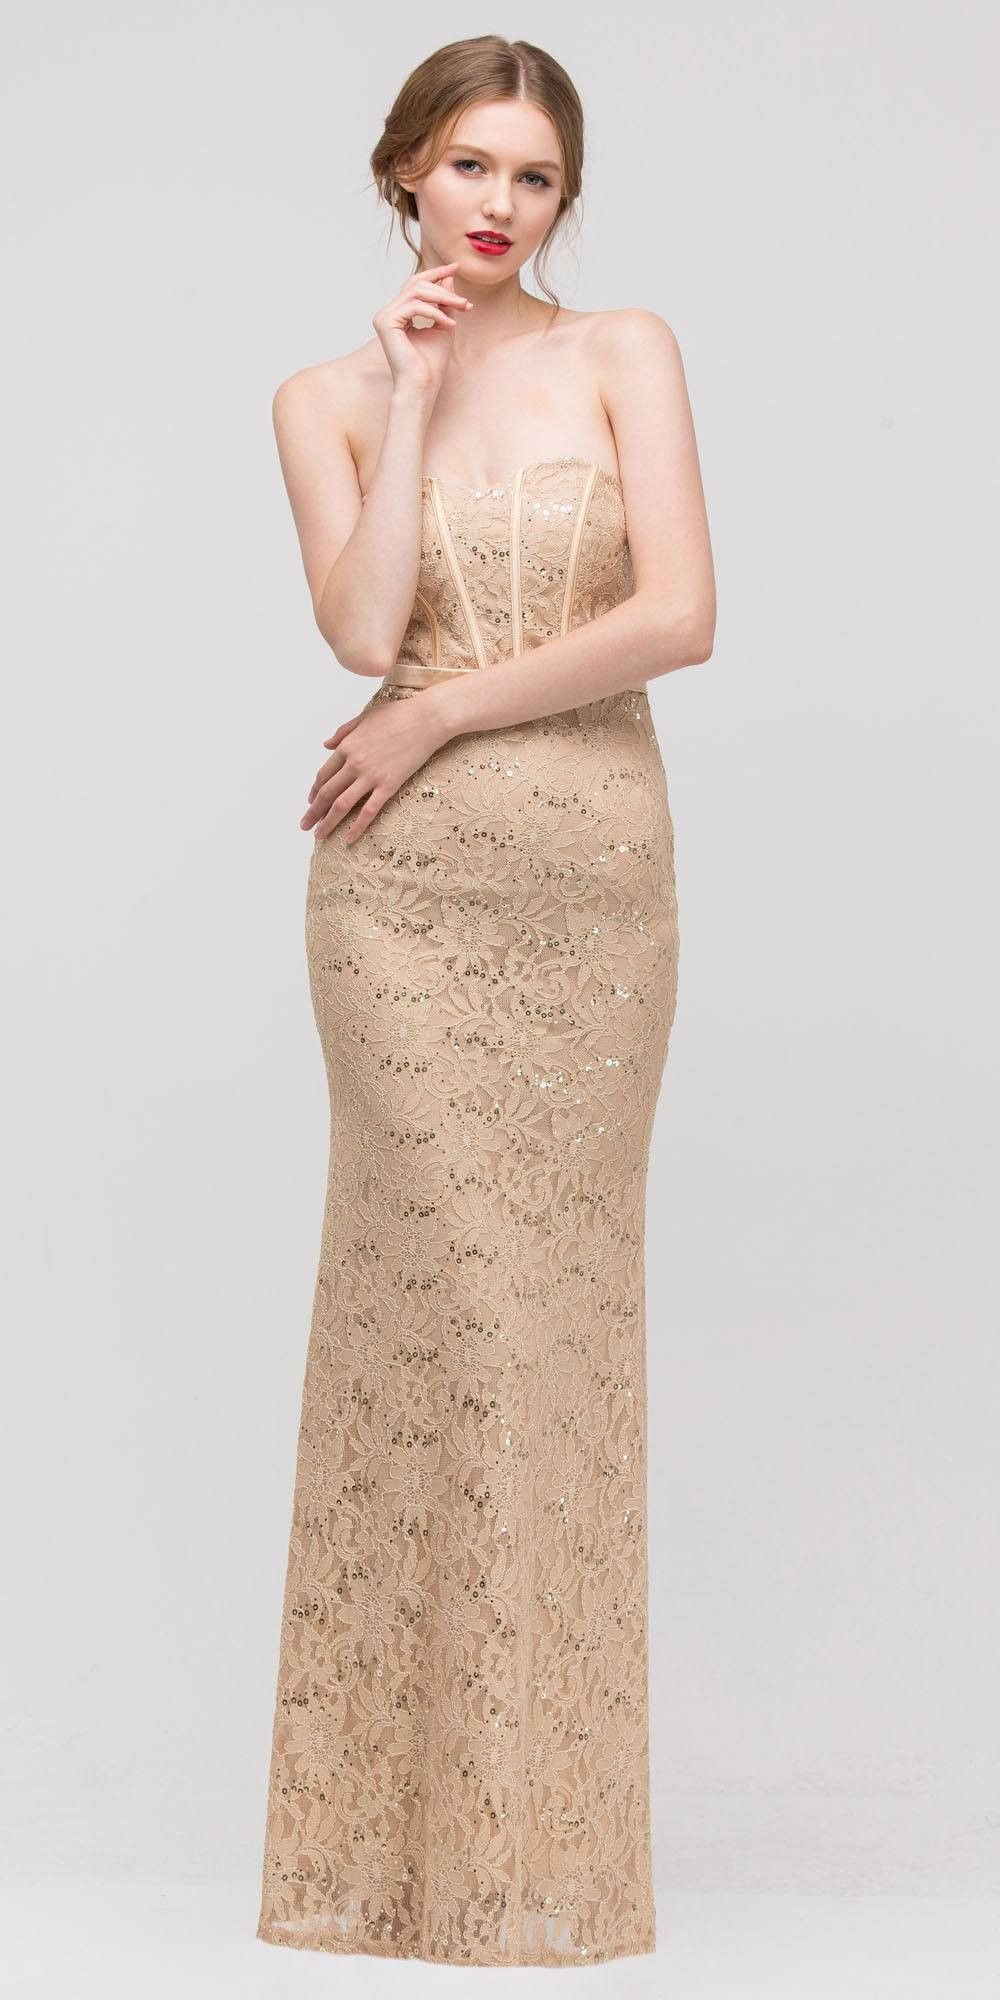 Long Lace Gown Silver Sheath Mermaid Flare Strapless Mid Sleeve Jacket